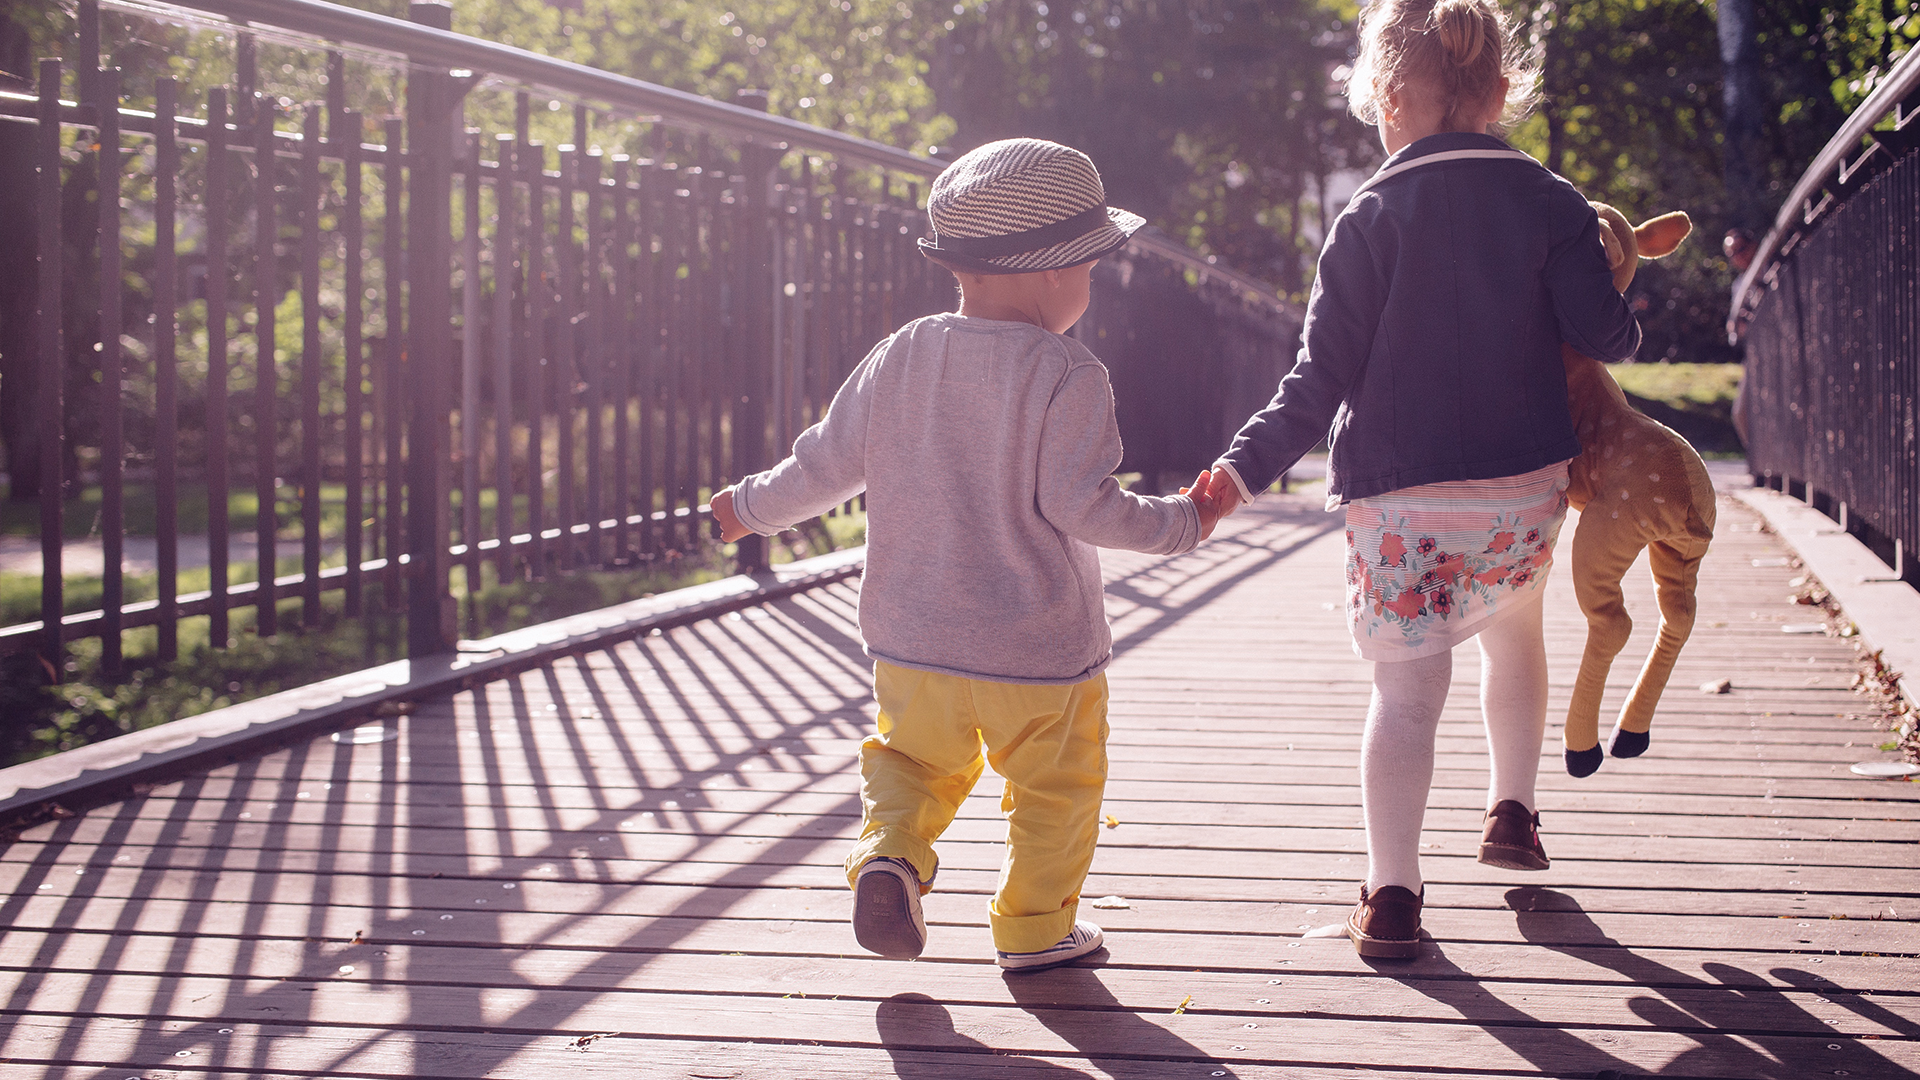 Two small children walking away, over a wooden bridge.